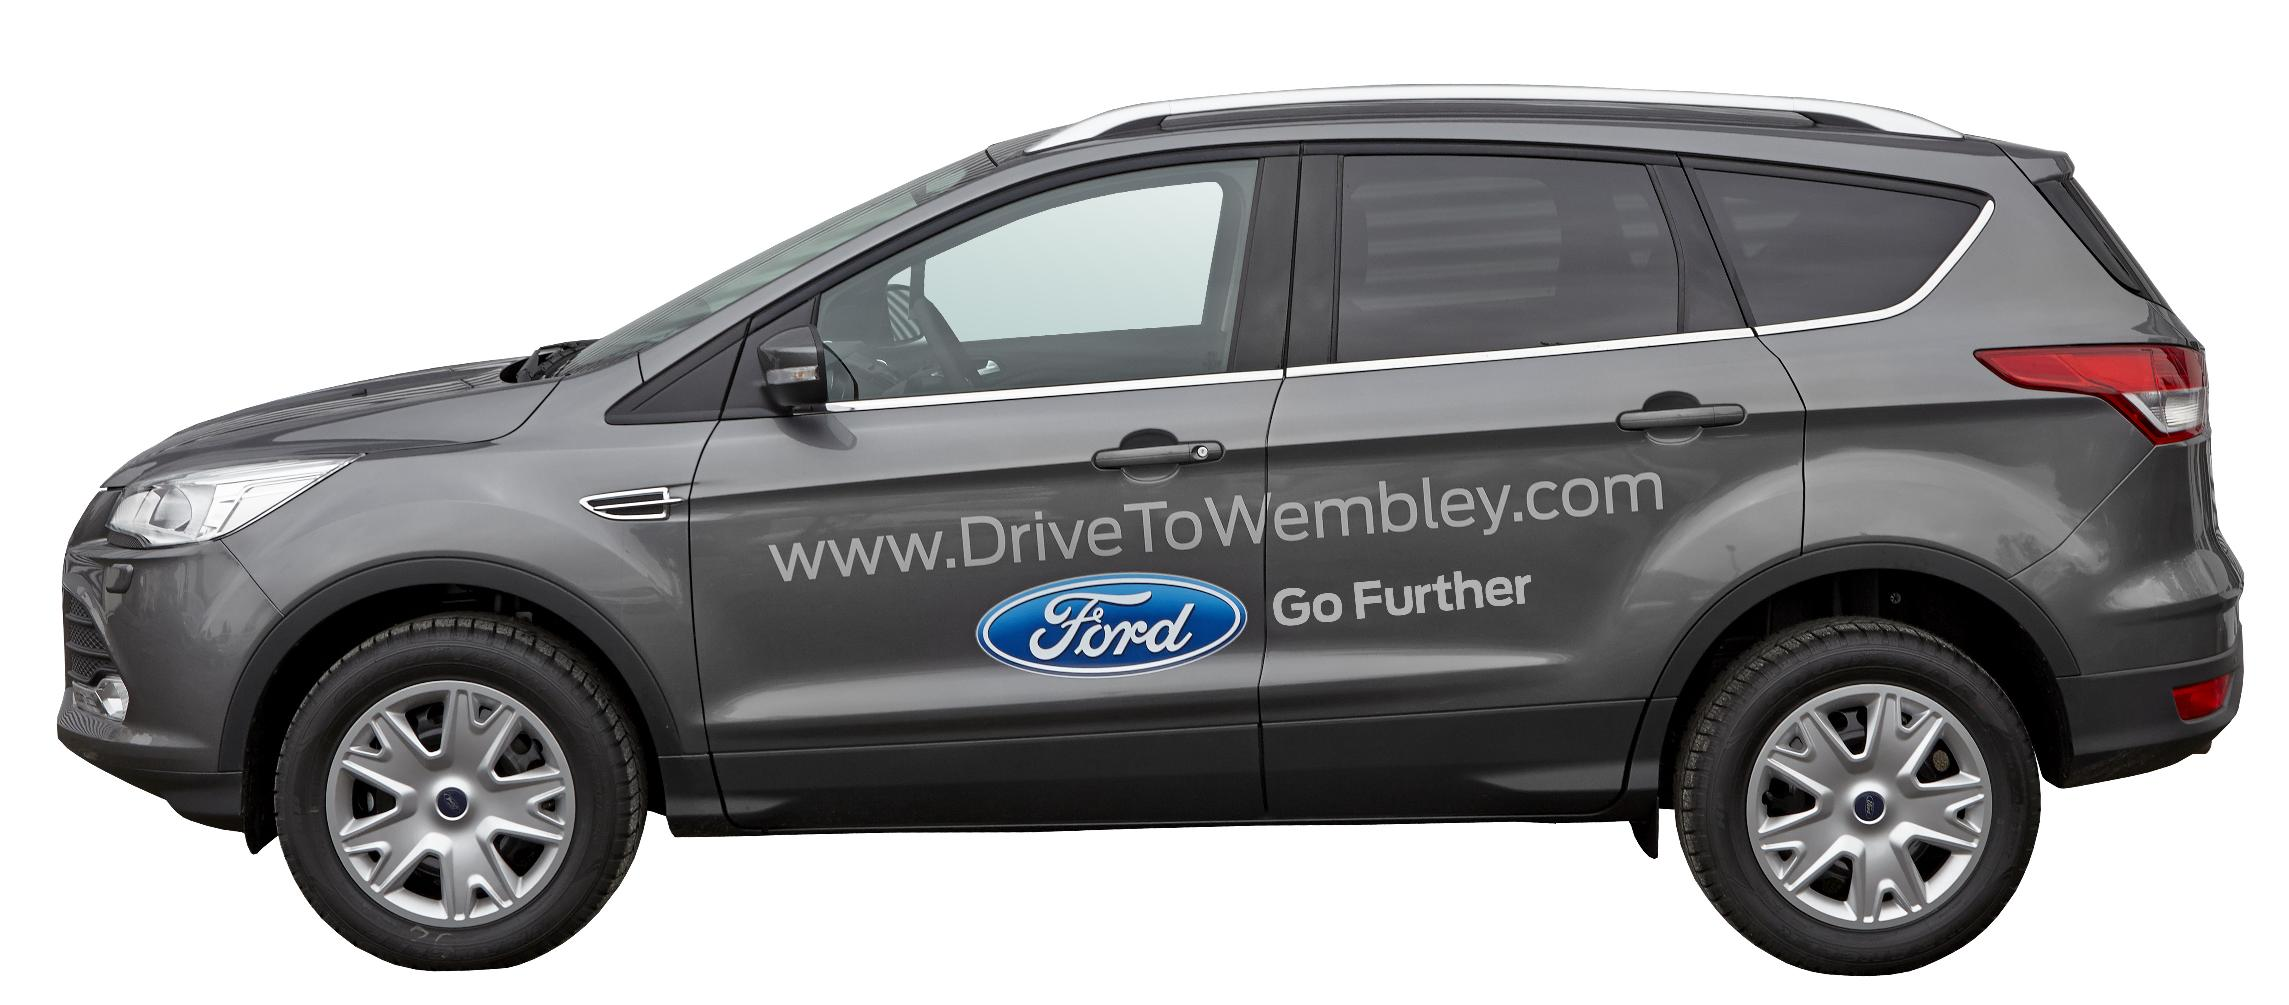 Ford Kuga, ligue des champions, champions league, Ford, kuga, wembley, concours, foot, football, SUV, compact